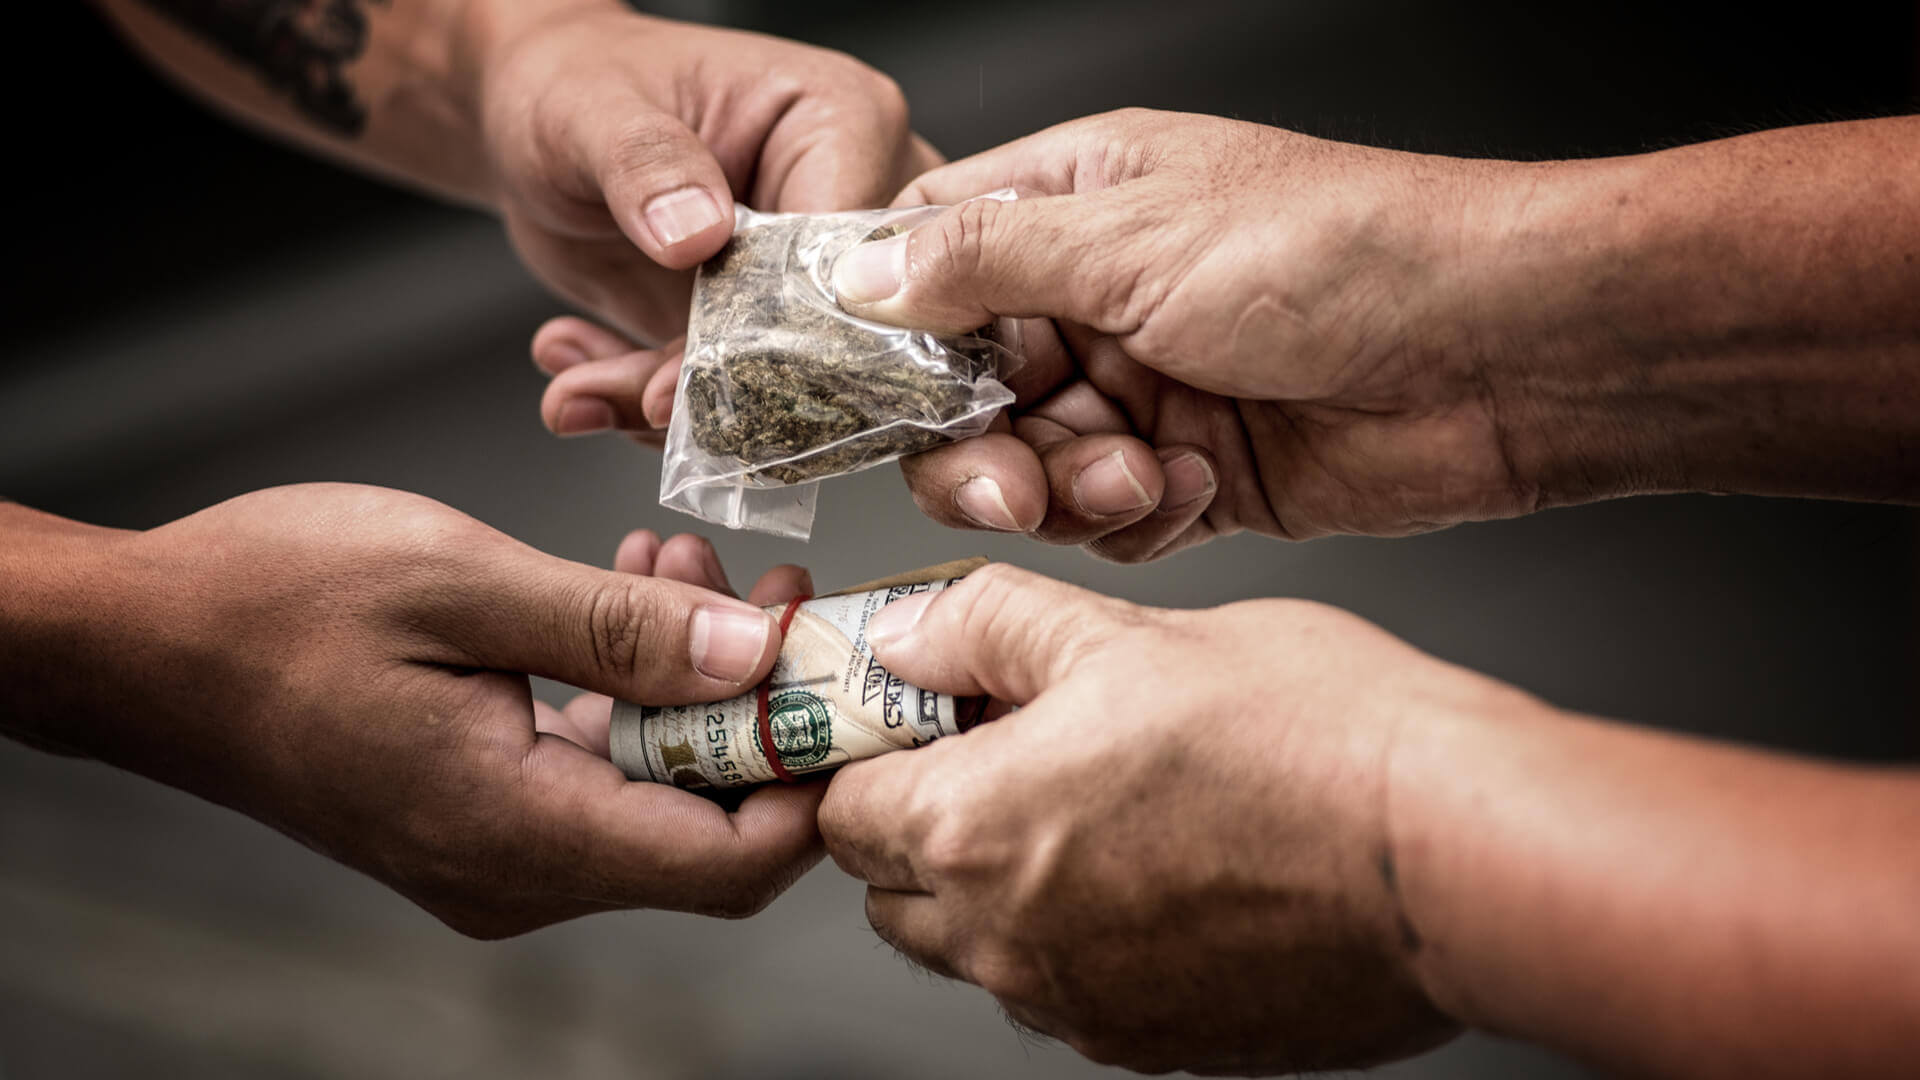 Cannabis and money exchange hands in a deal